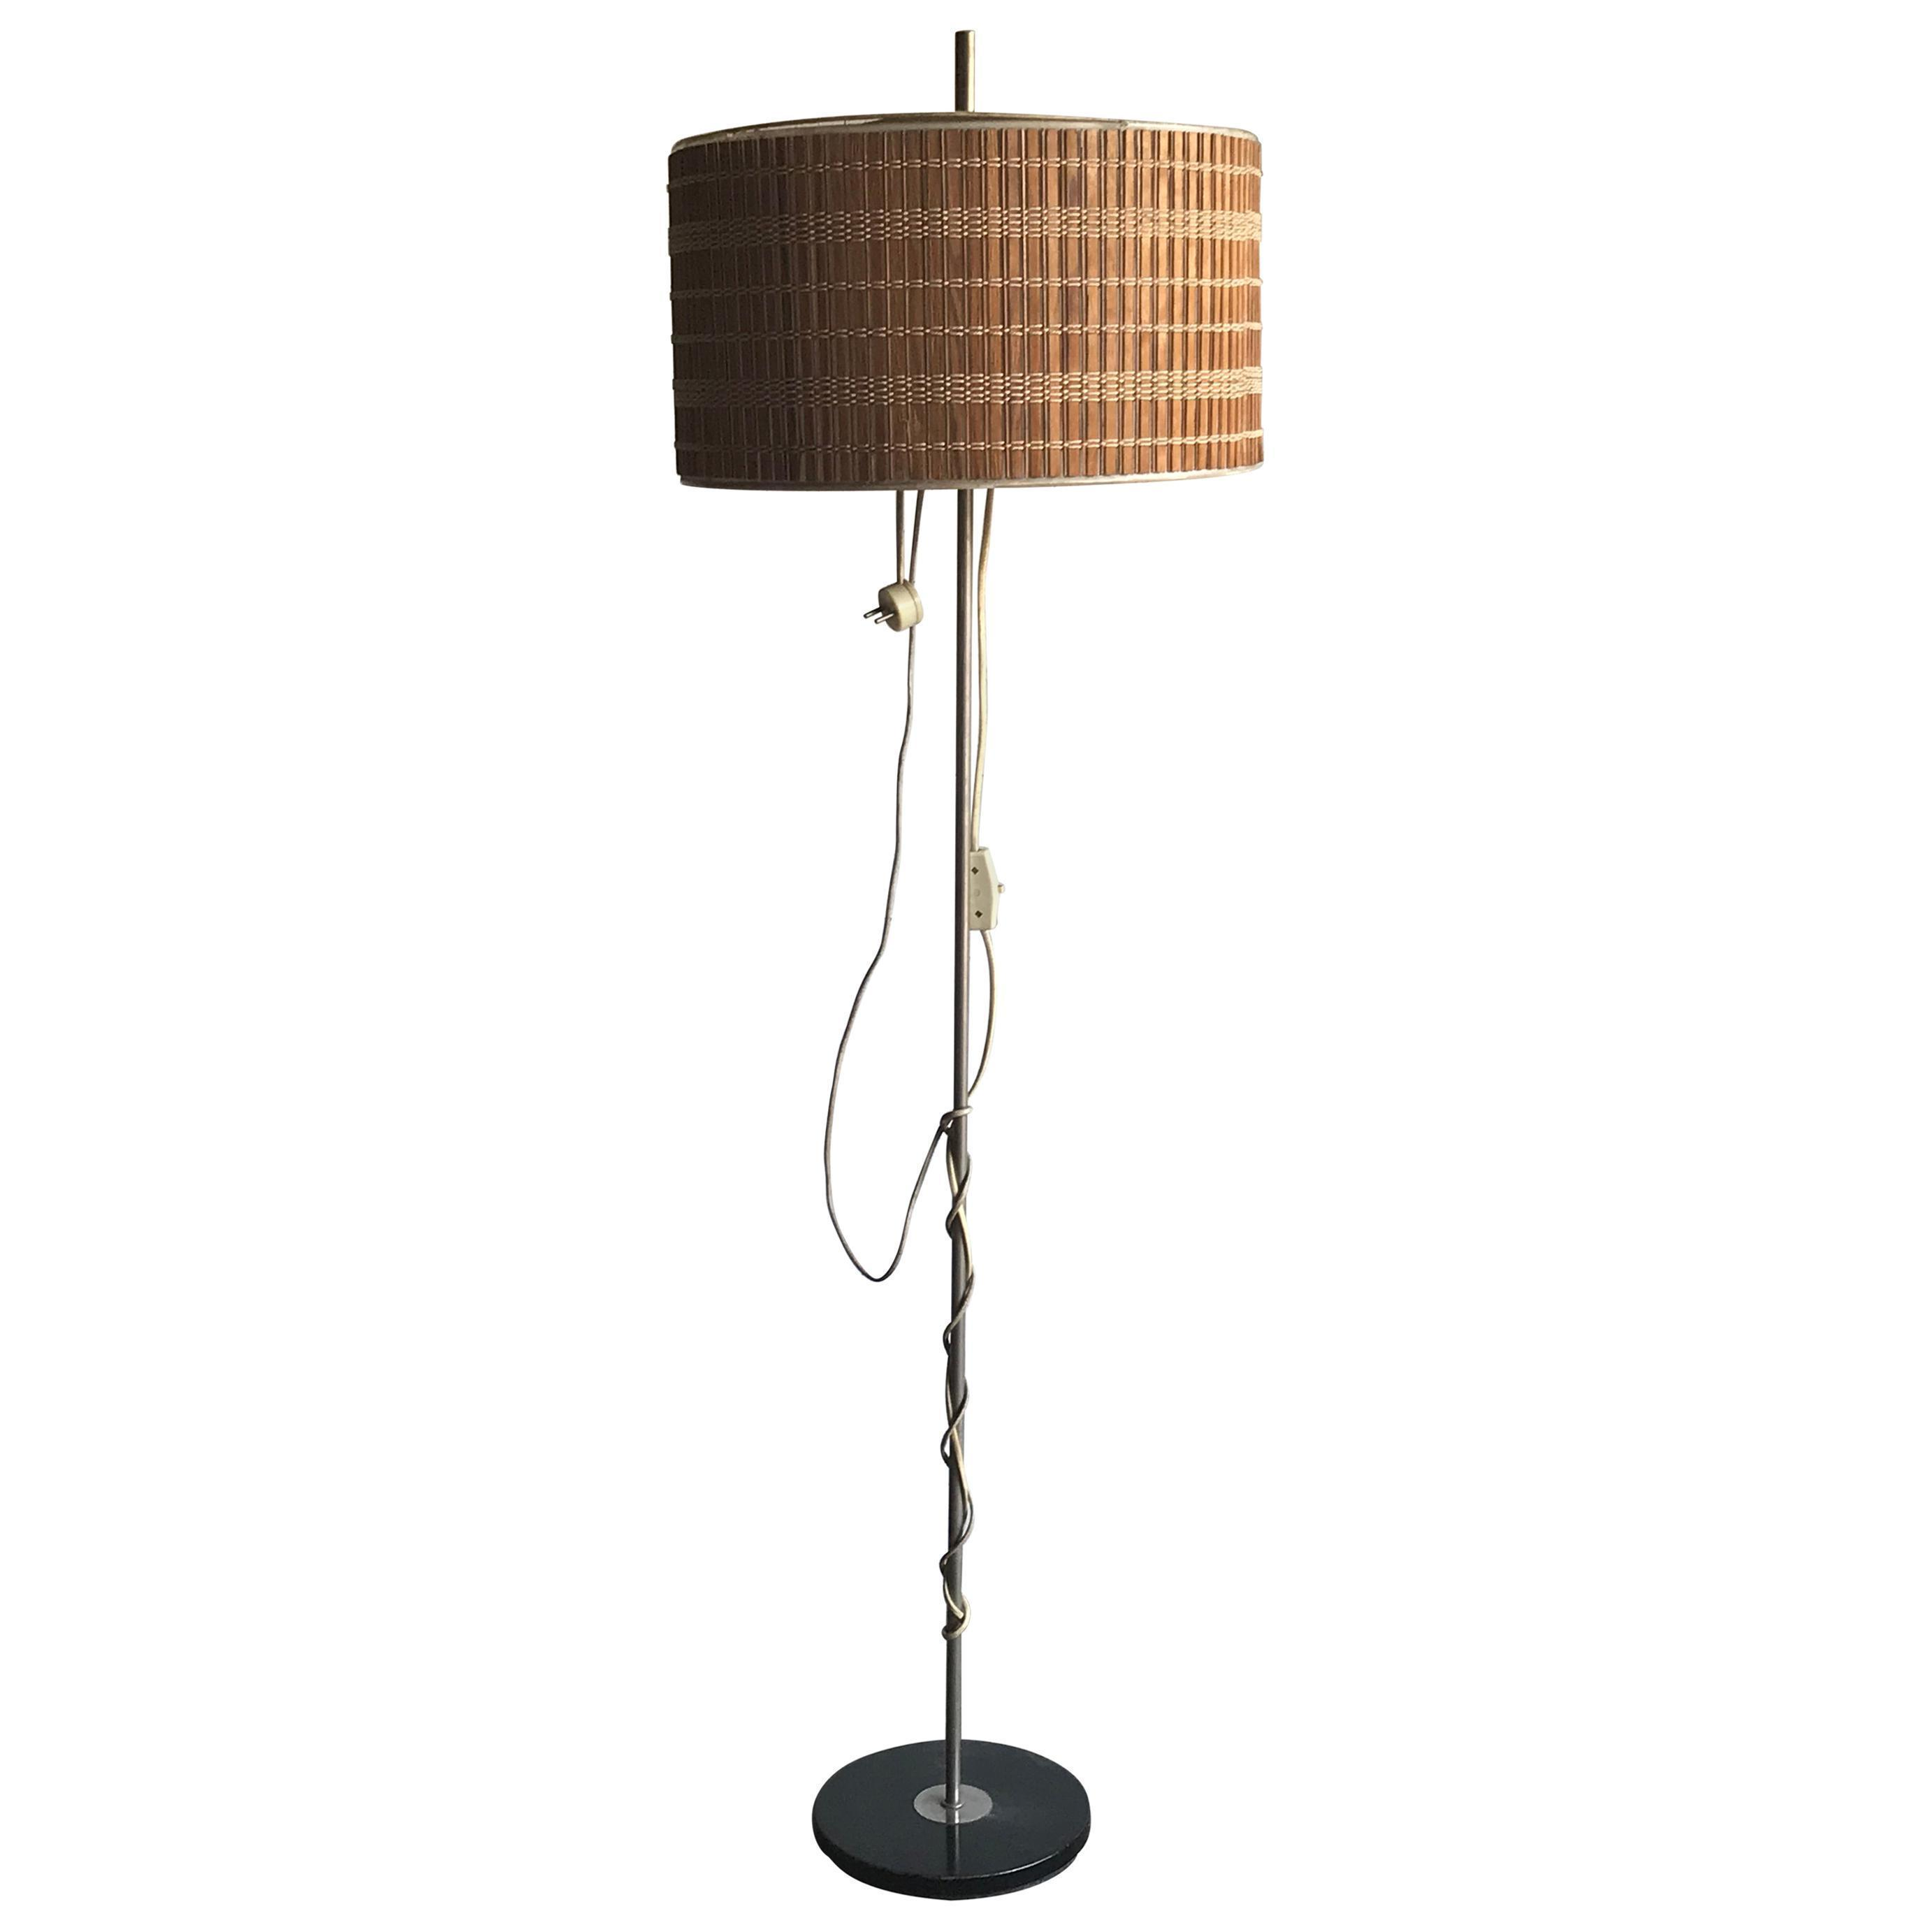 Midcentury Floor Lamp With Wooden Shade Vinterior